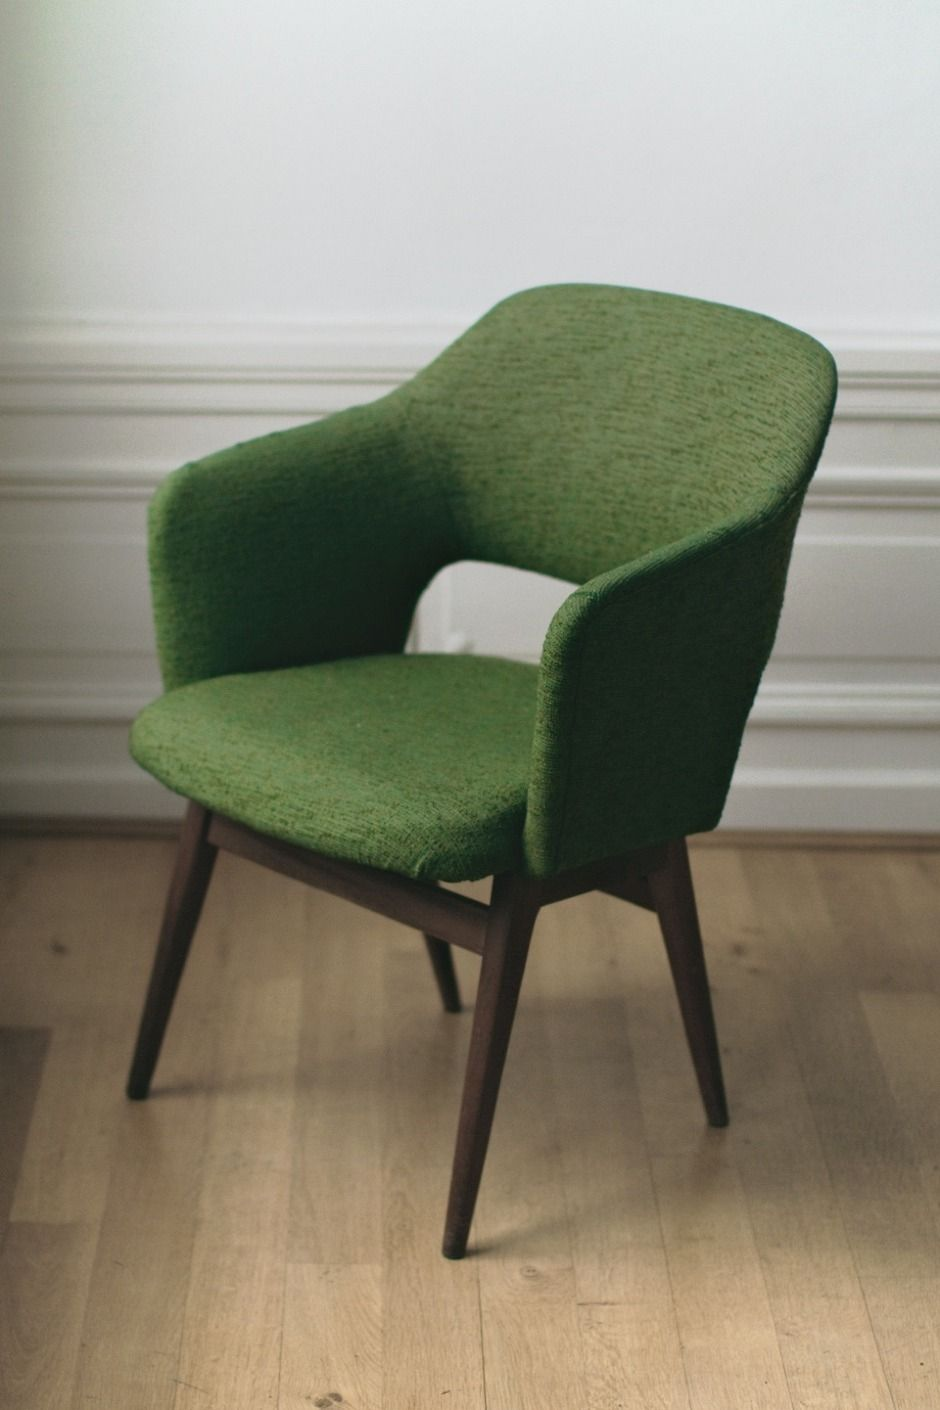 Green Upholstered Chair Moss Green Tweed Upholstered Chair Furnishings Chair